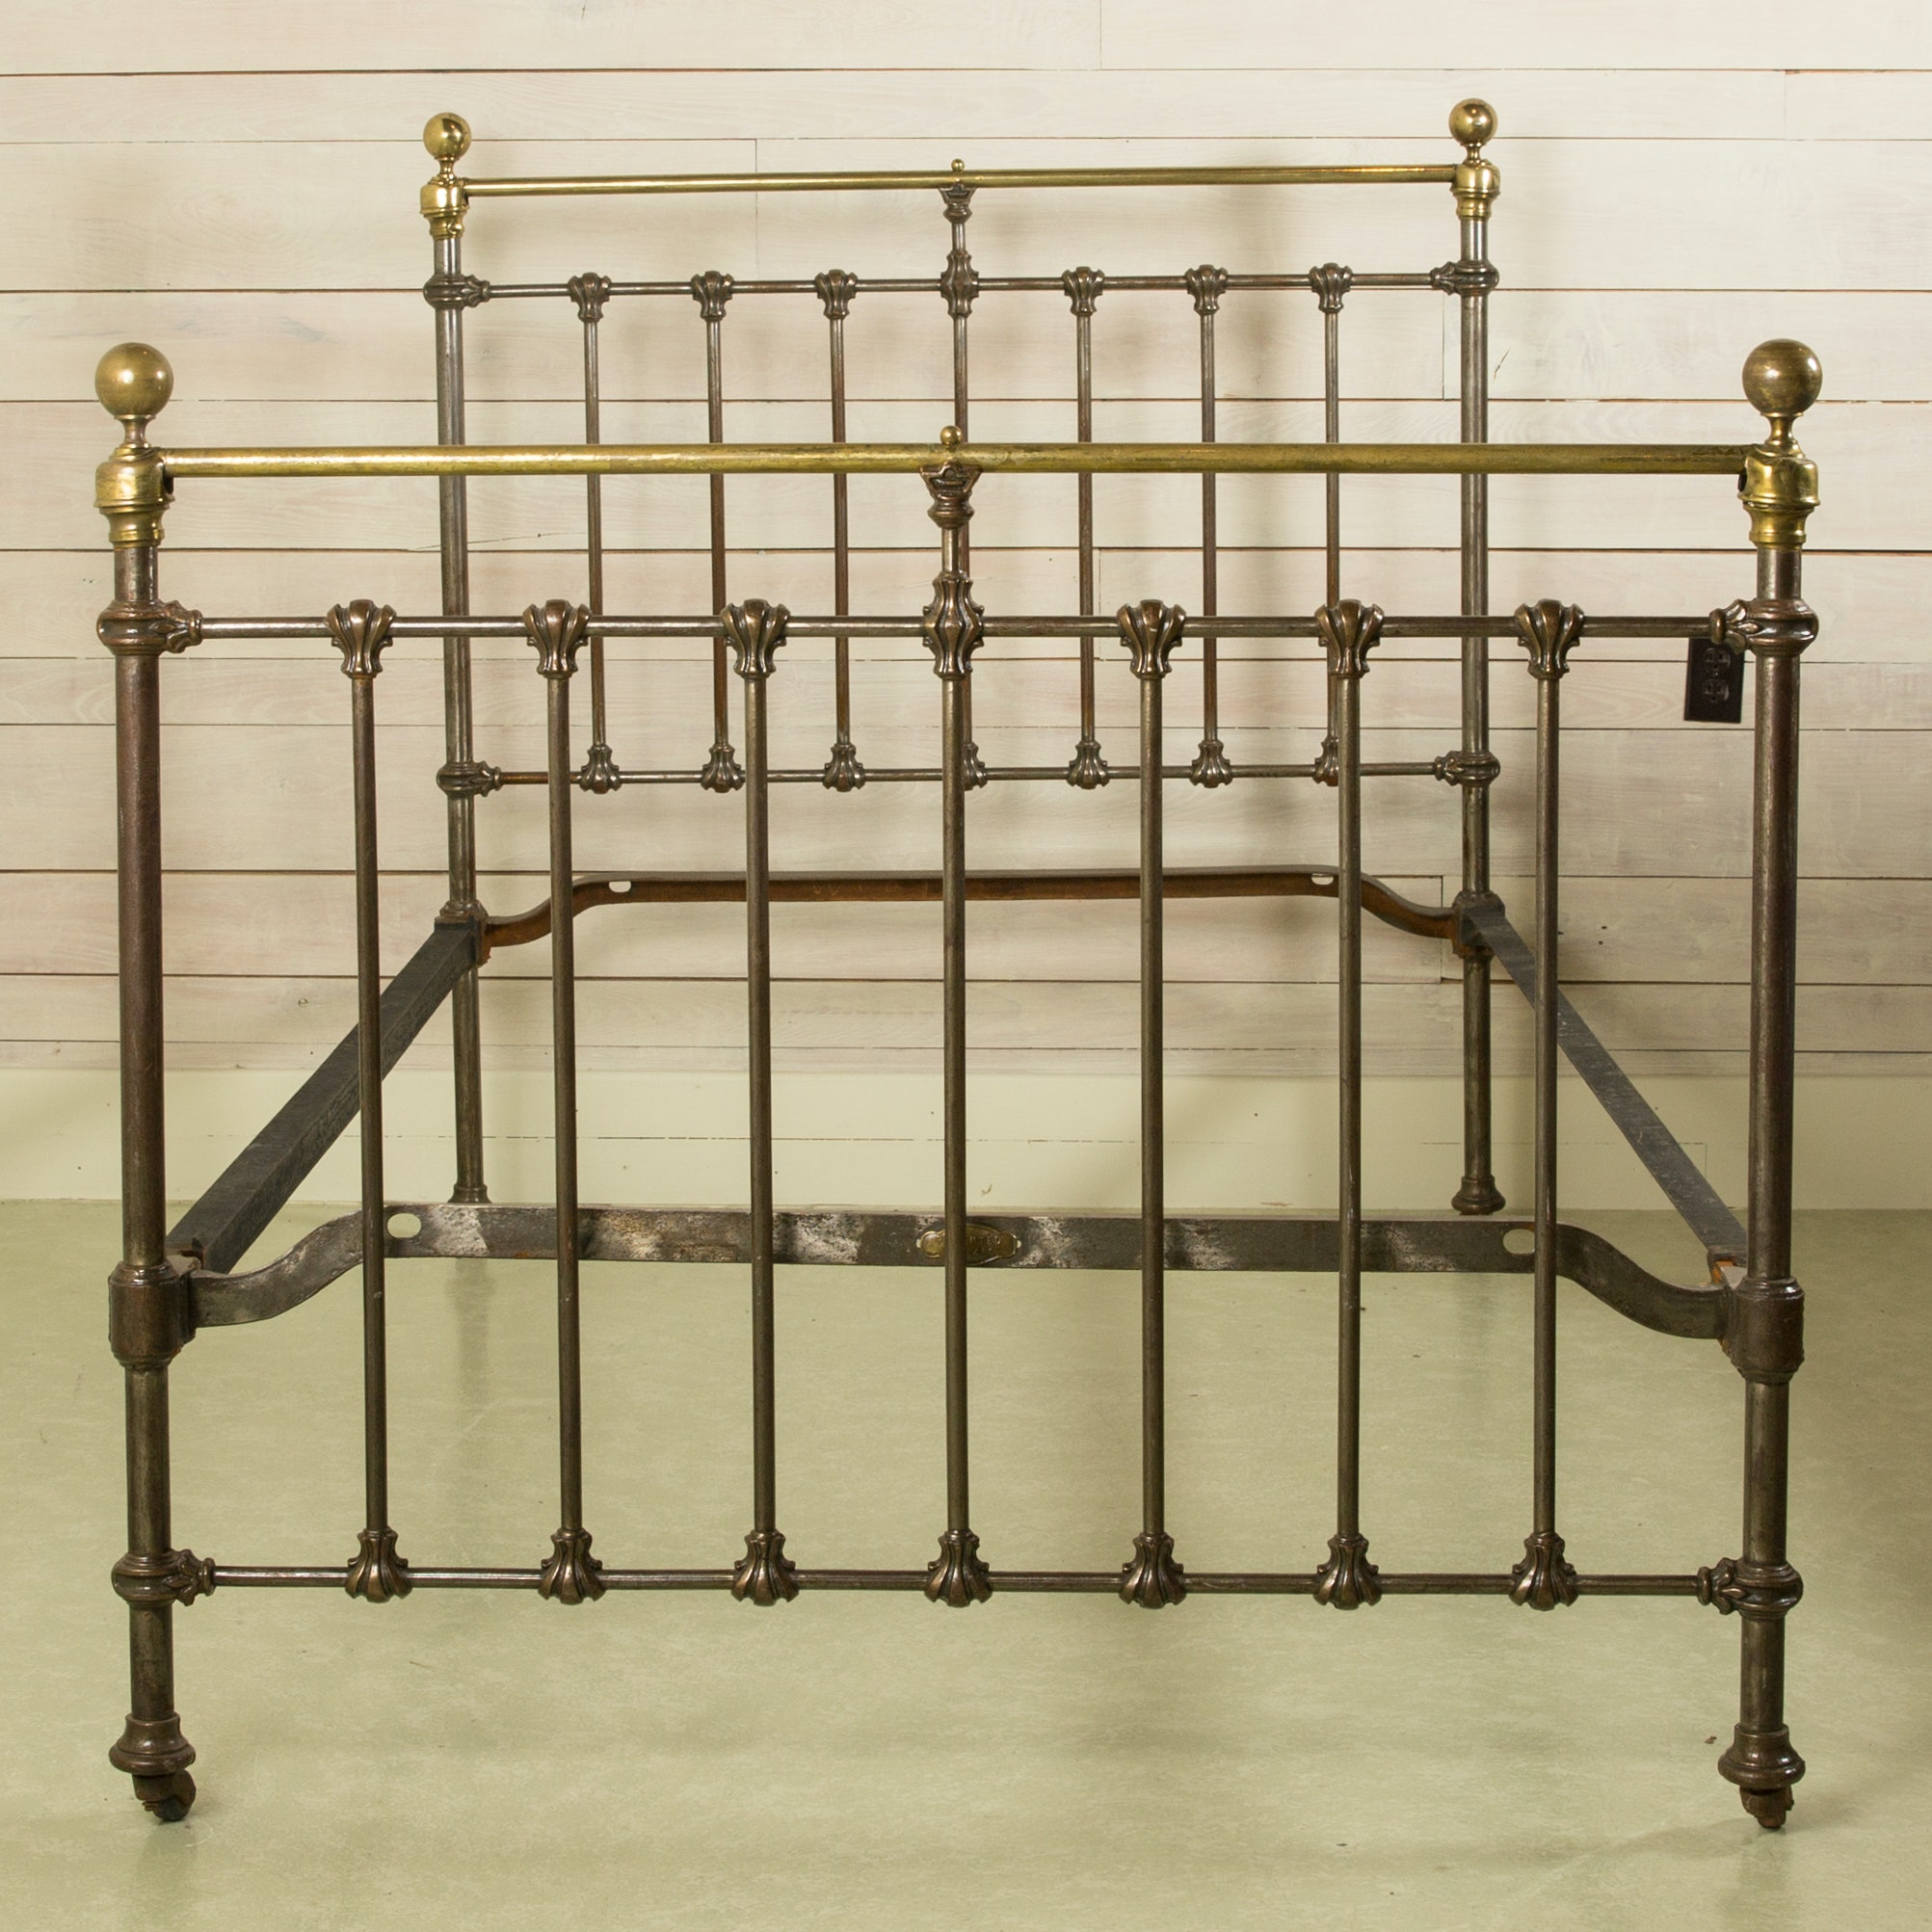 Unique Antique Iron and Brass Bed Elegant - Popular Brass Bed Frame Trending